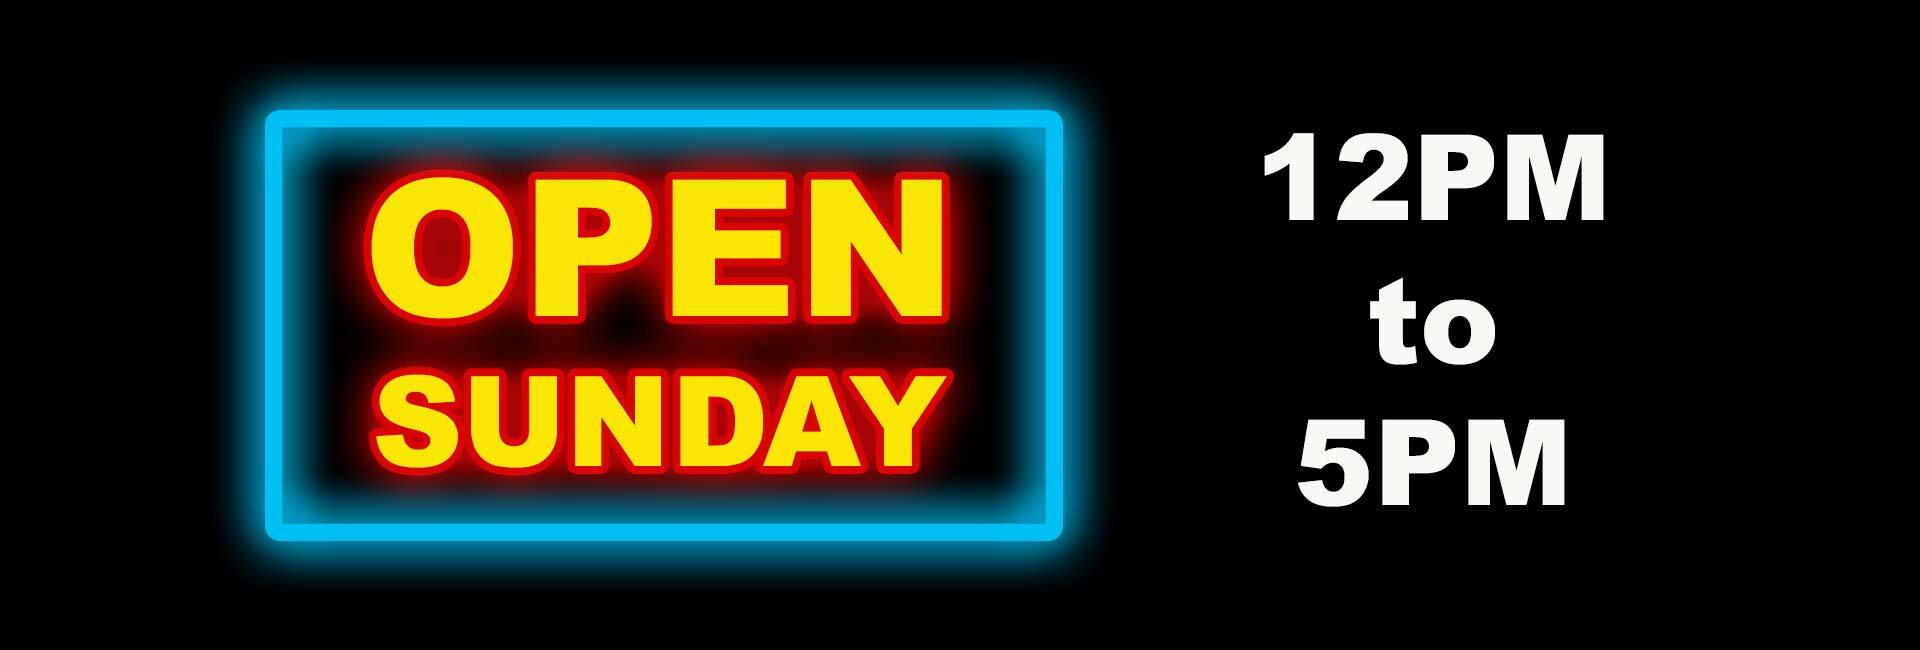 We Are Open Sunday Noon to 5pm